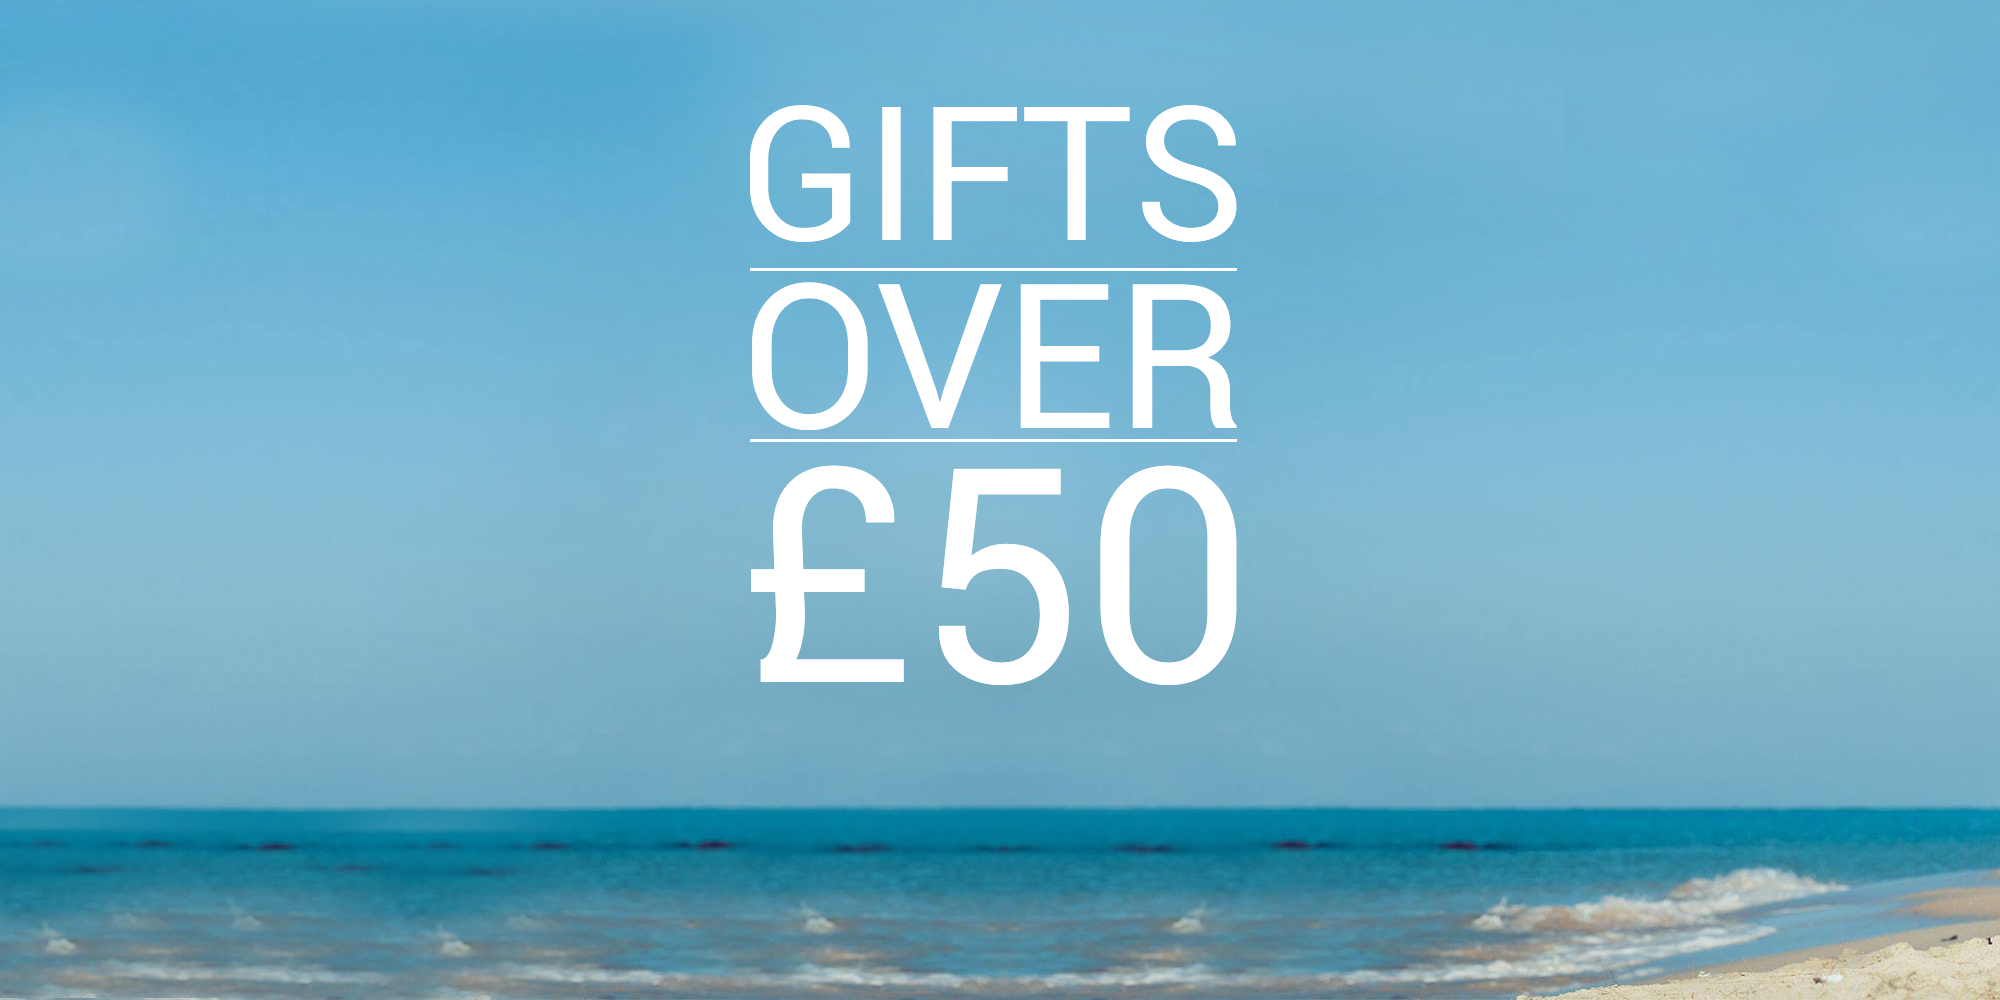 Fathers Day Gifts over £50 from Pirates Cave Chandlery